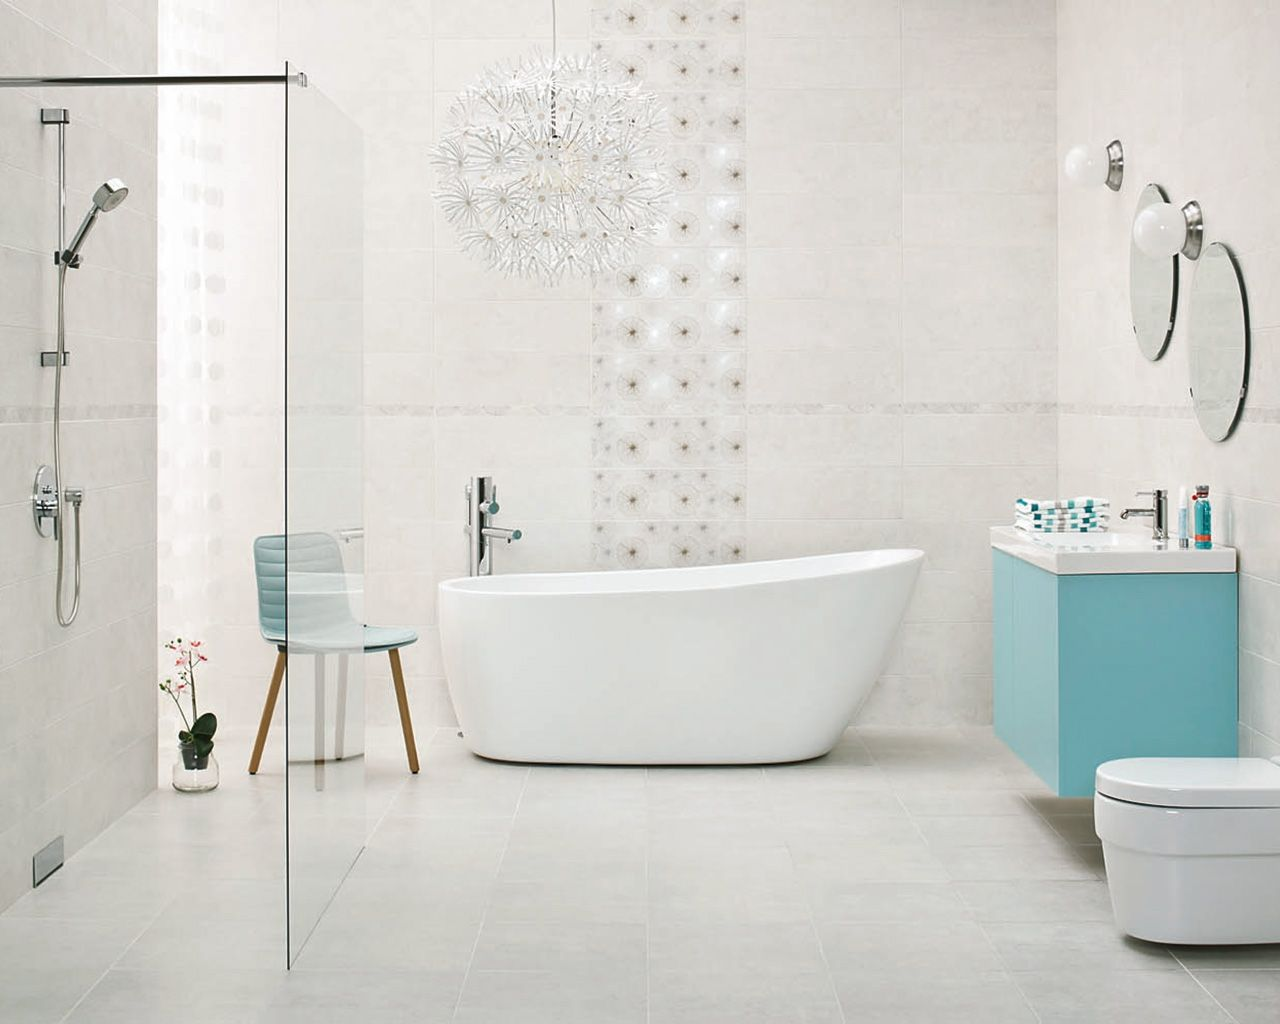 Nirrad / Niro - Bathroom tiles 20x60 cm in white and gray | Ceramika ...